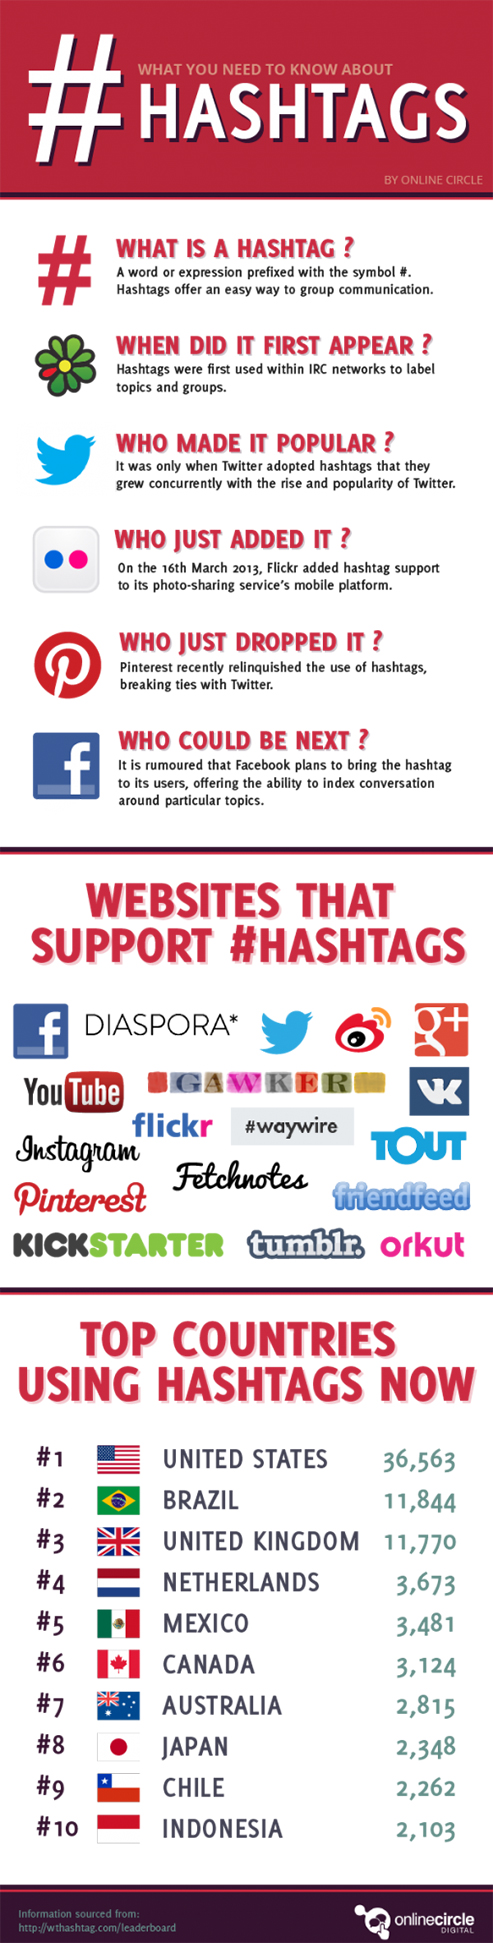 infographic_hashtags